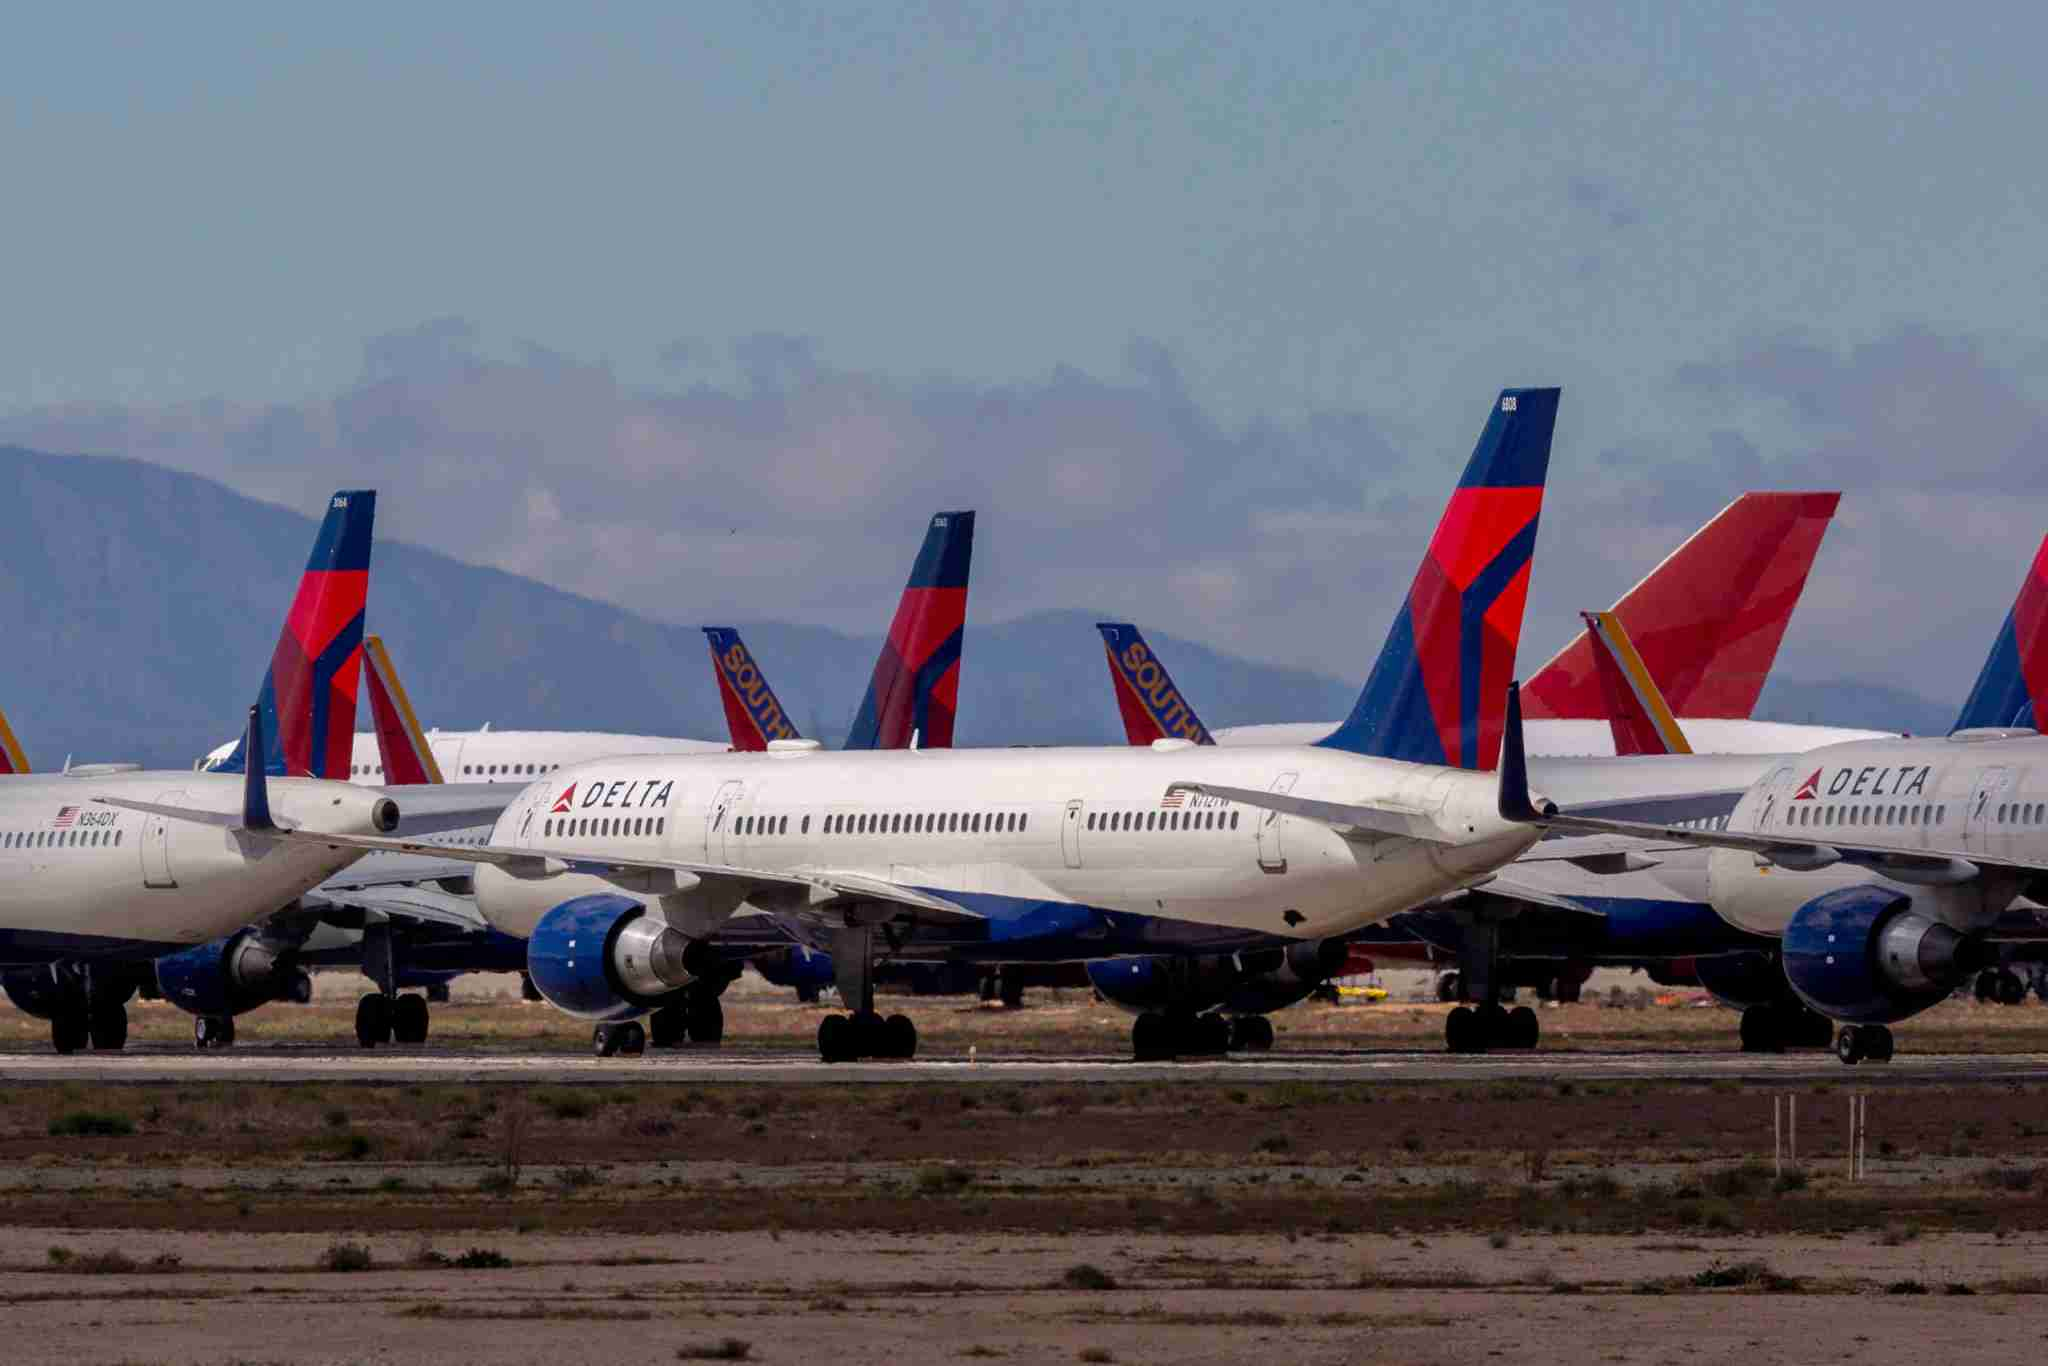 VICTORVILLE, CA - MARCH 24: Delta Air Lines jets are parked in growing numbers at Southern California Logistics Airport (SCLA) on March 24, 2020 in Victorville, California. As the coronavirus pandemic grows, exponentially increasing travel restrictions and the numbers of people in quarantine, airlines around the world are scrambling to find places to park a majority of their fleet as they wait to see how the situation will play out. (Photo by David McNew/Getty Images)